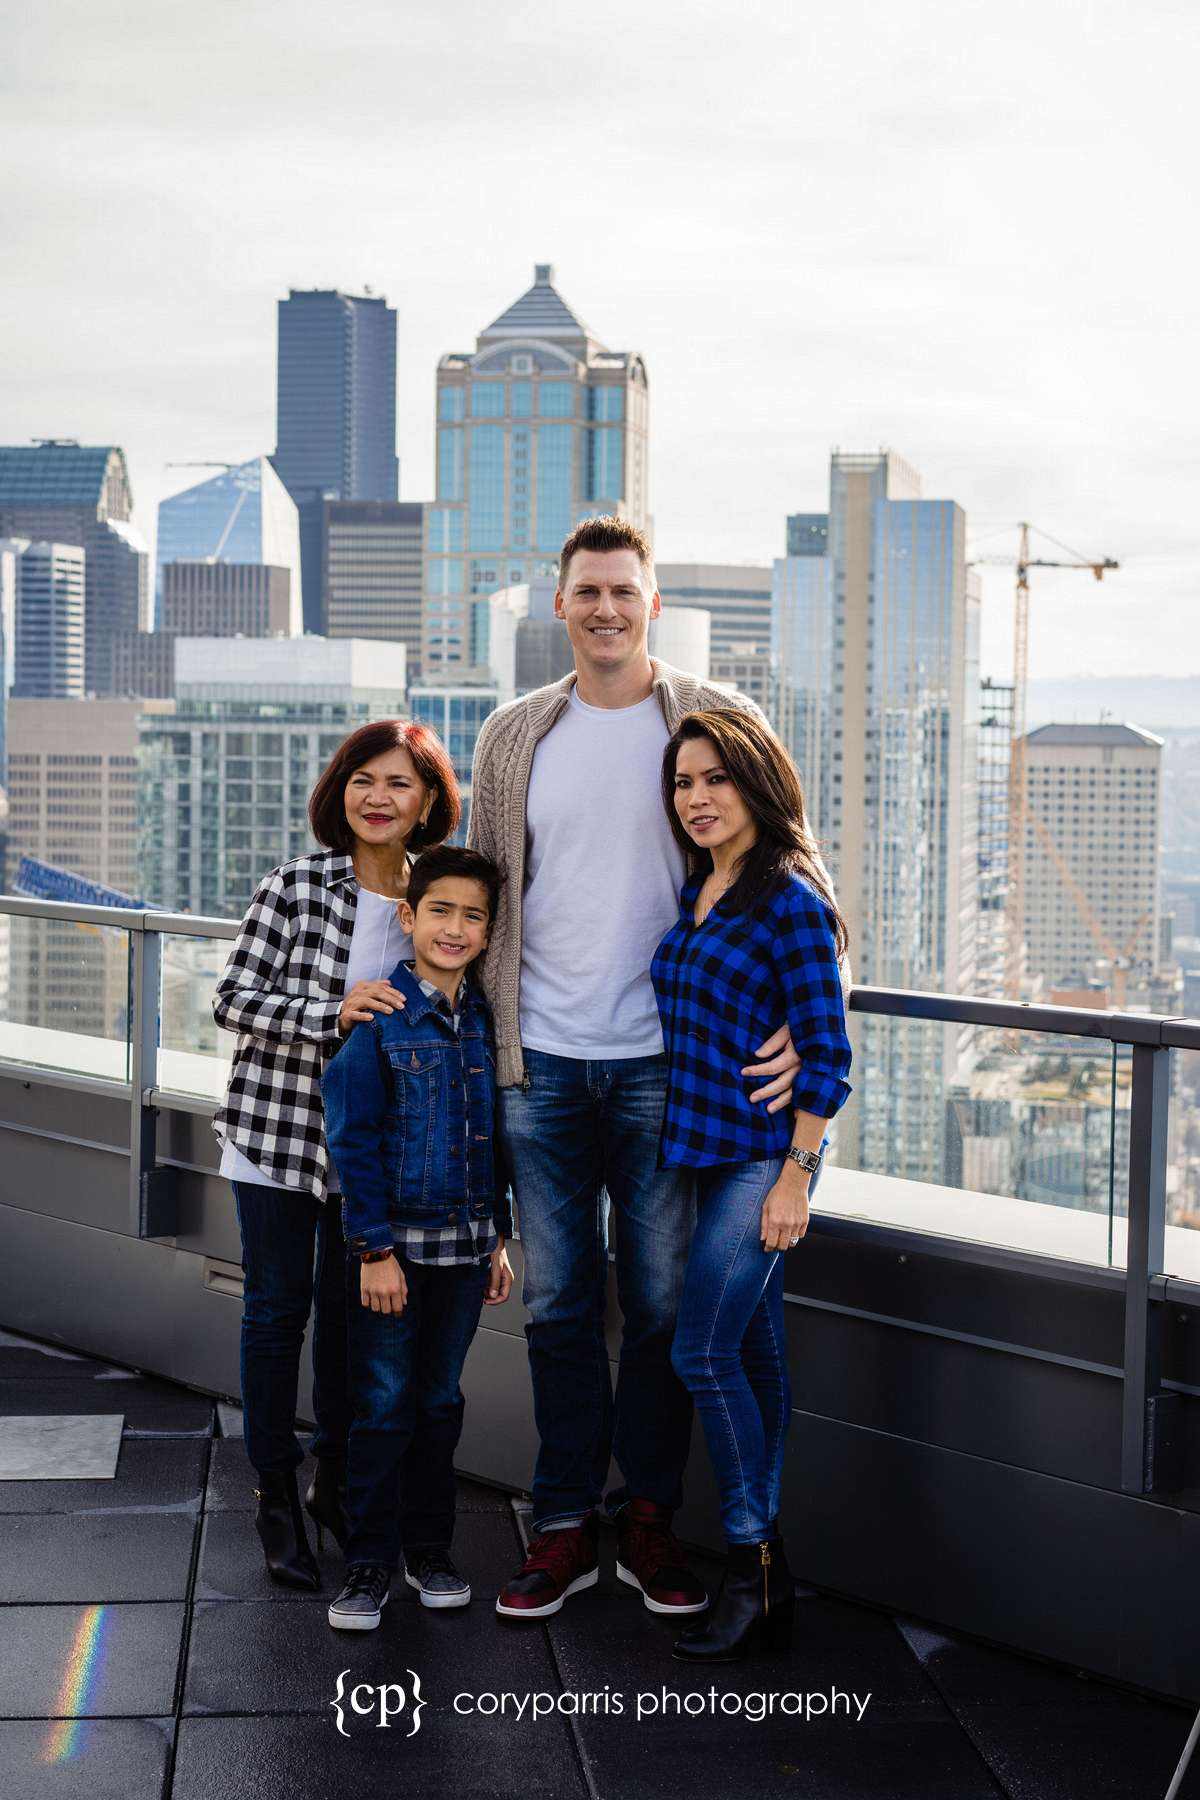 009-seattle-family-portraits-Pike-Place.jpg